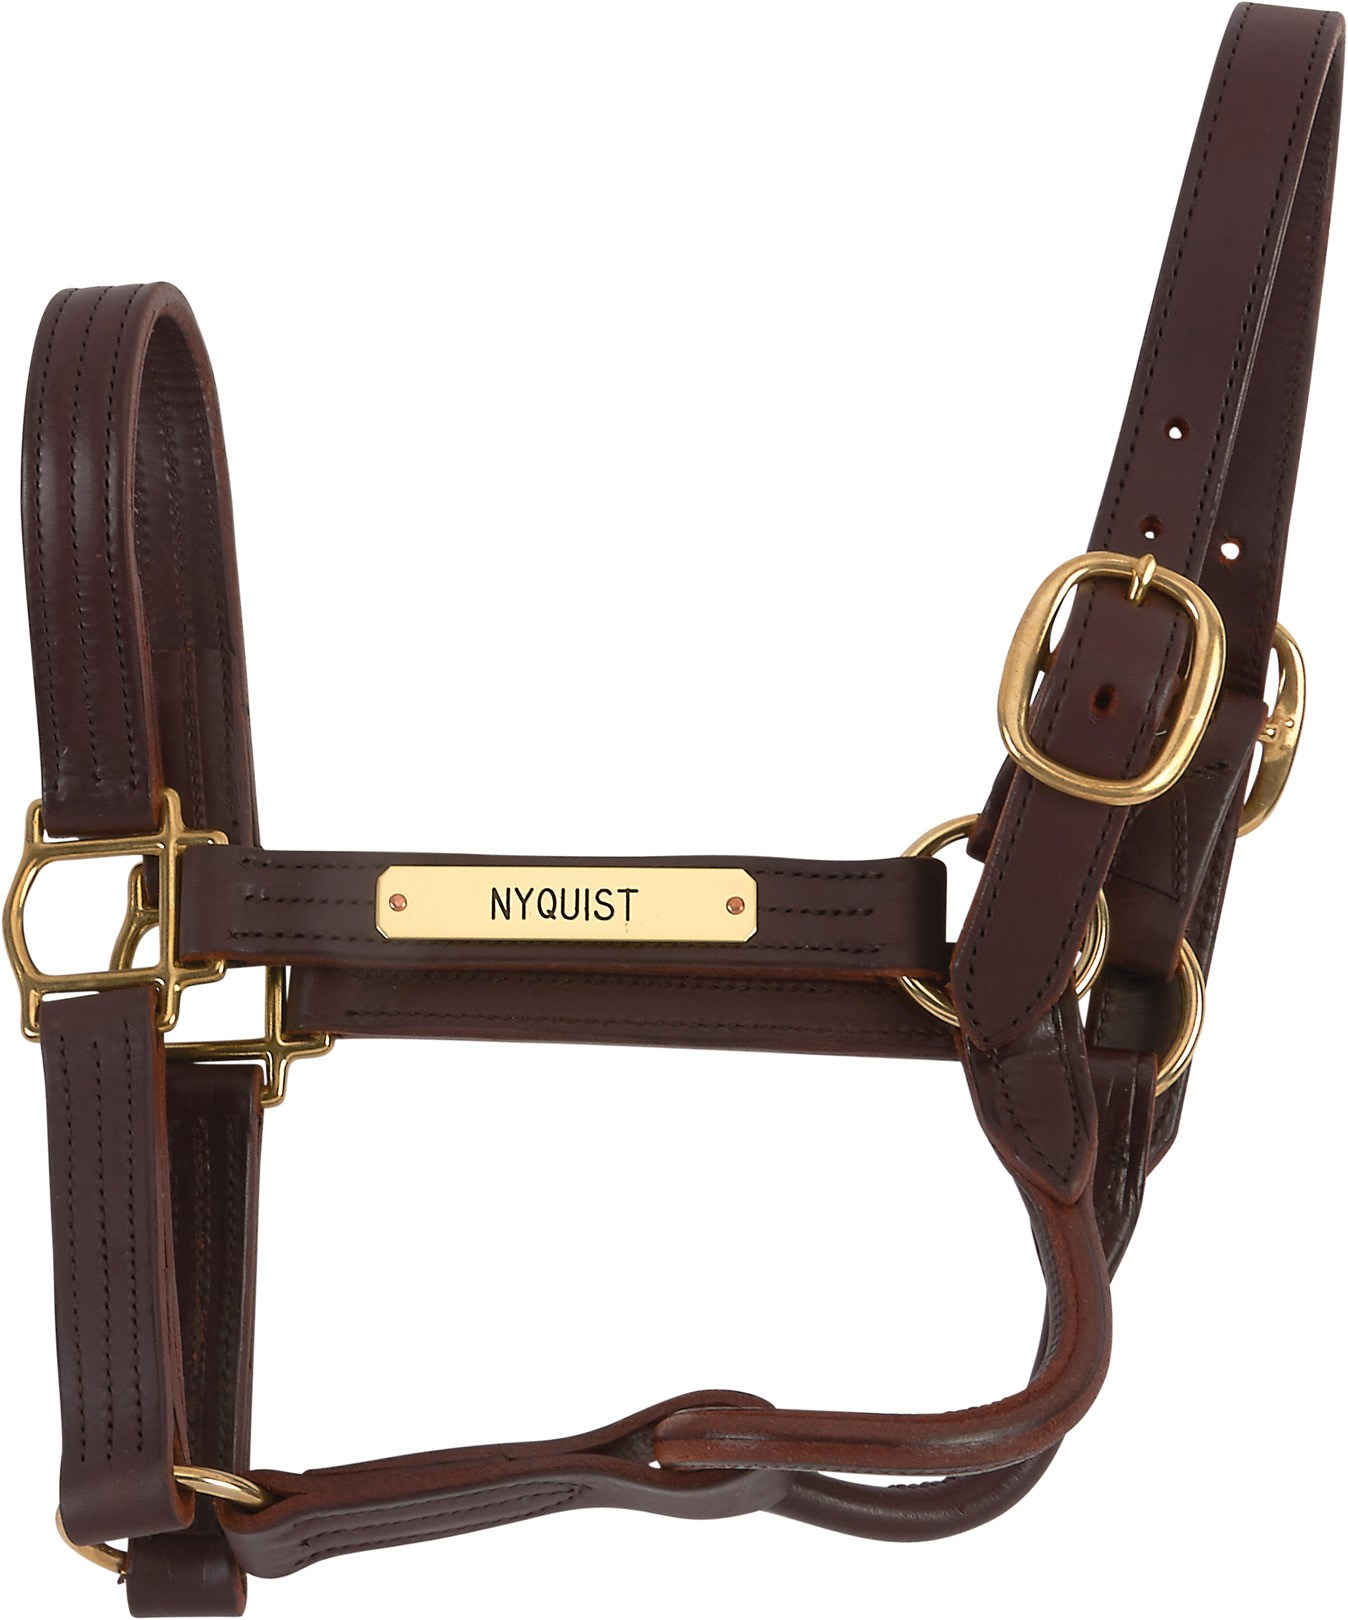 2016 Nyquist Worn Halter the Day After Preakness (Trainer LOA)